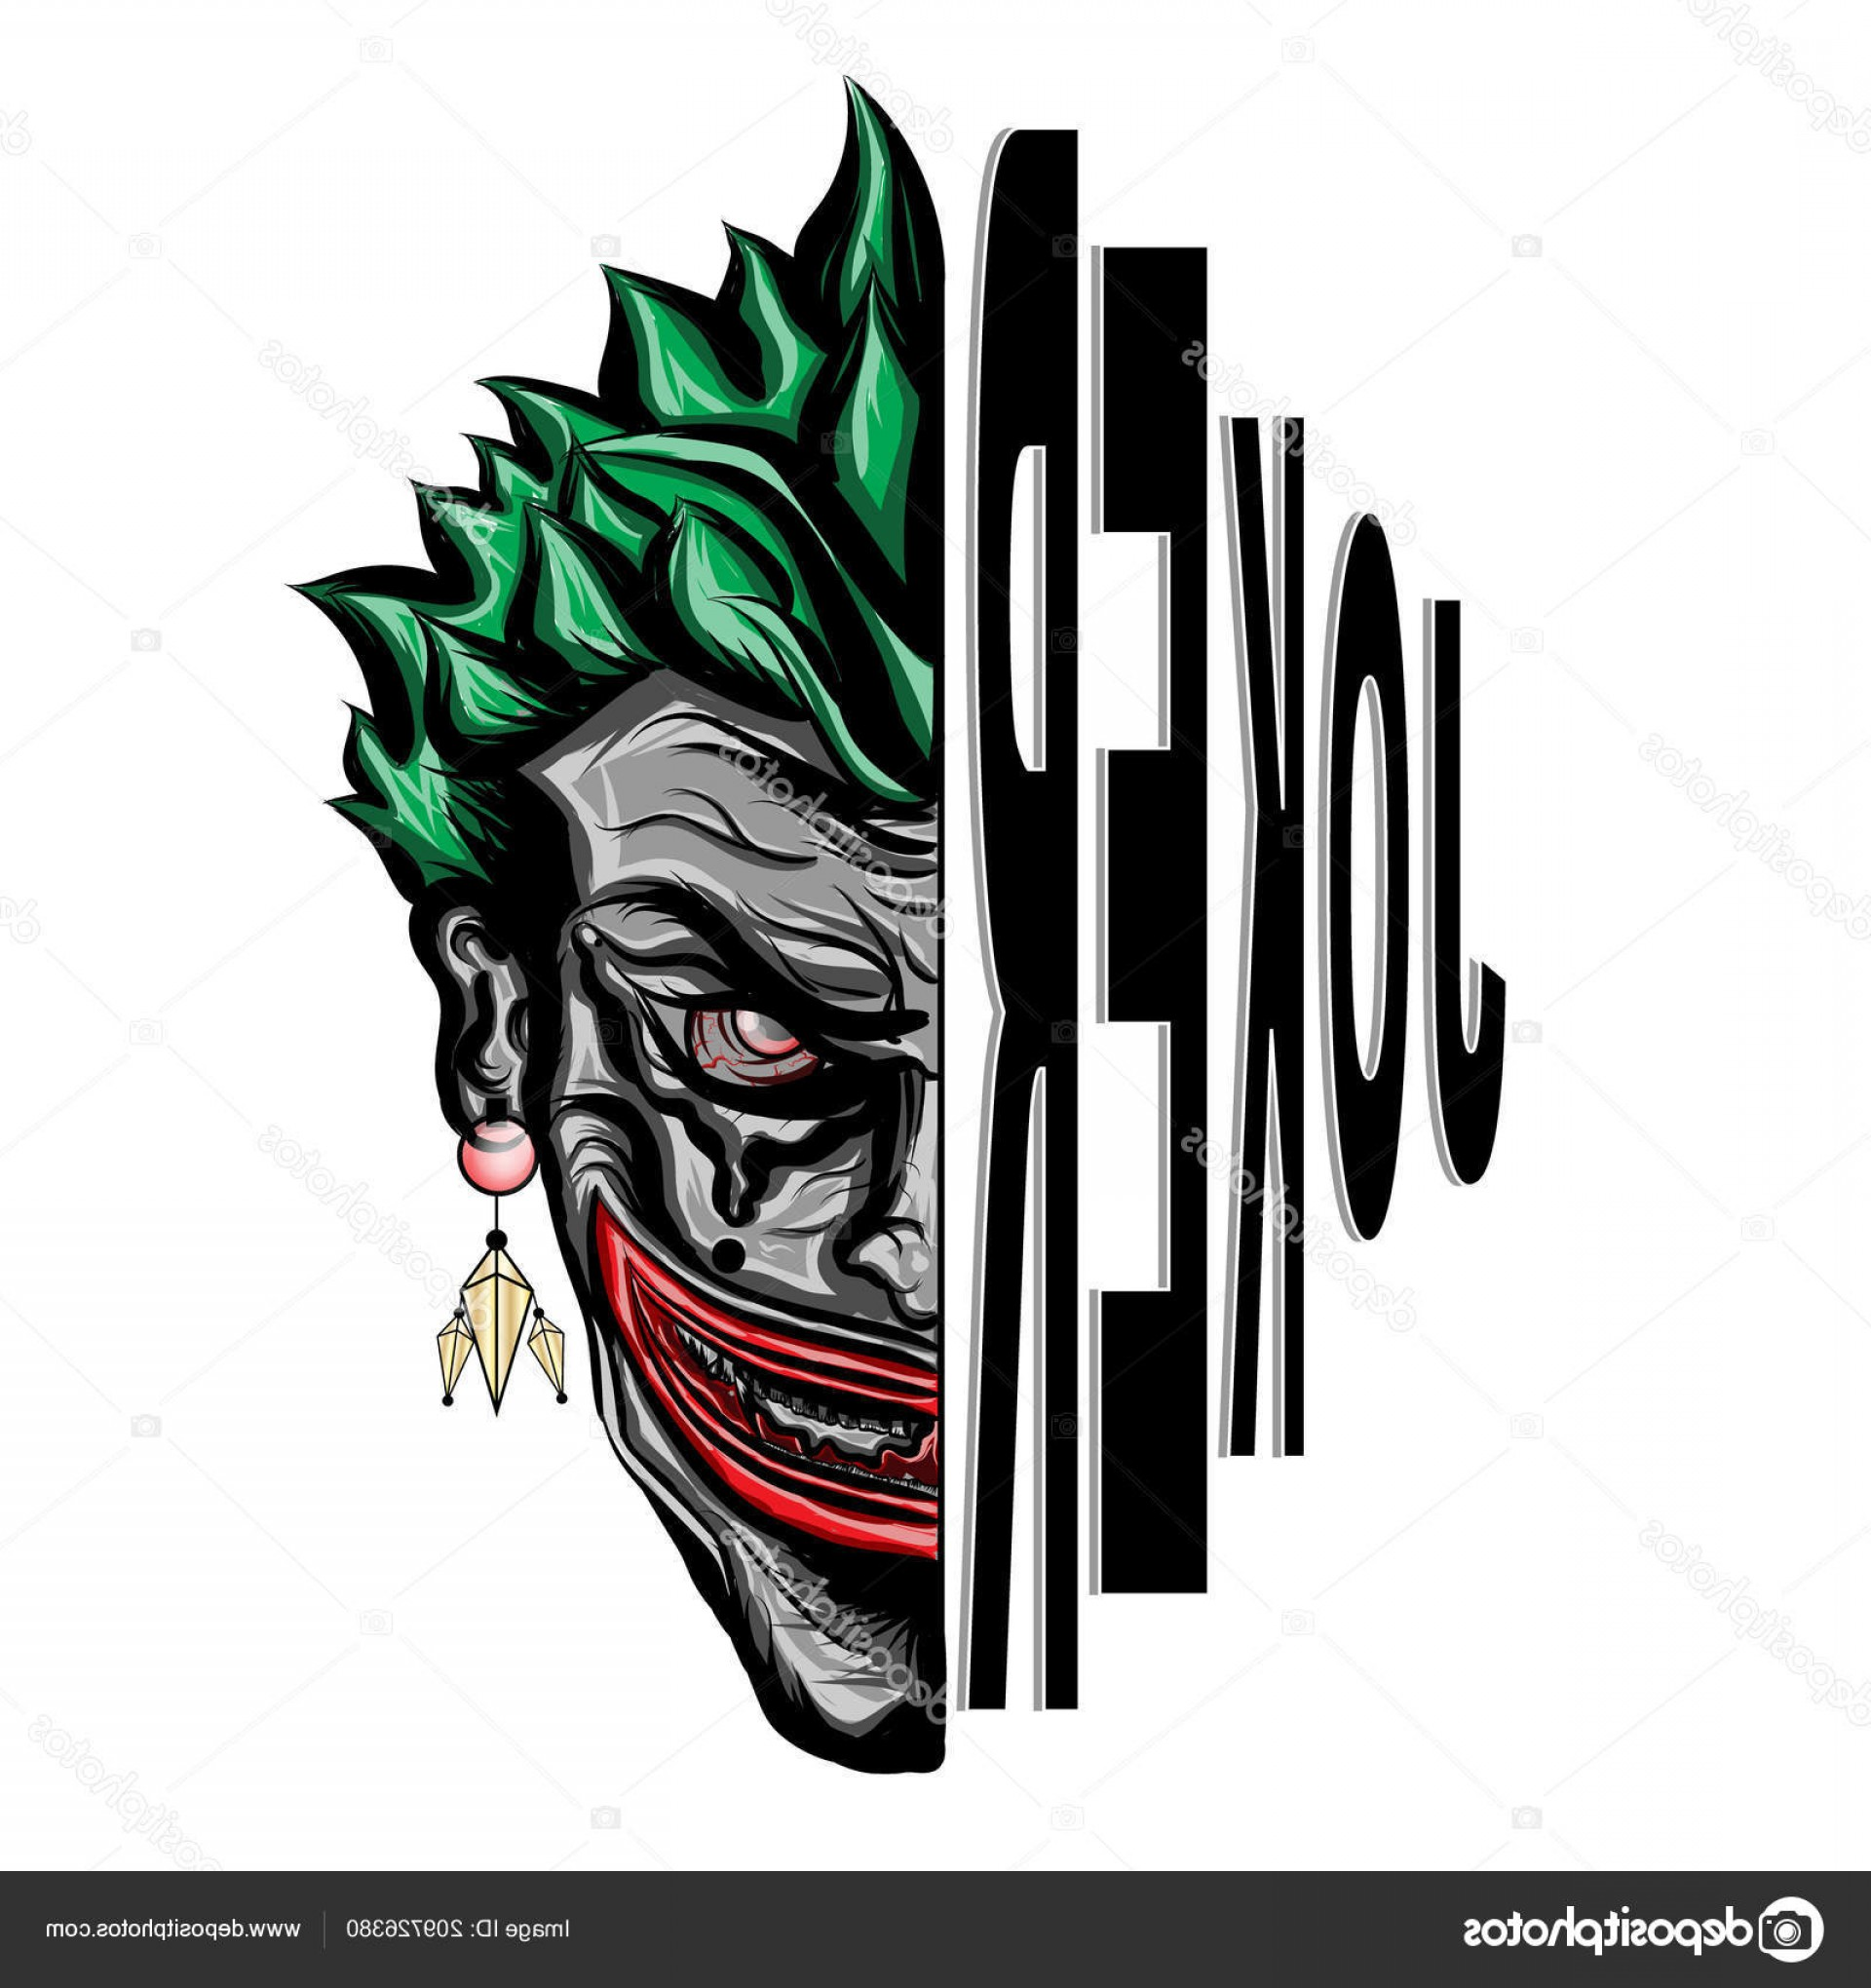 Joker Vector Graphics: Stock Illustration Joker Smiling Face Vector